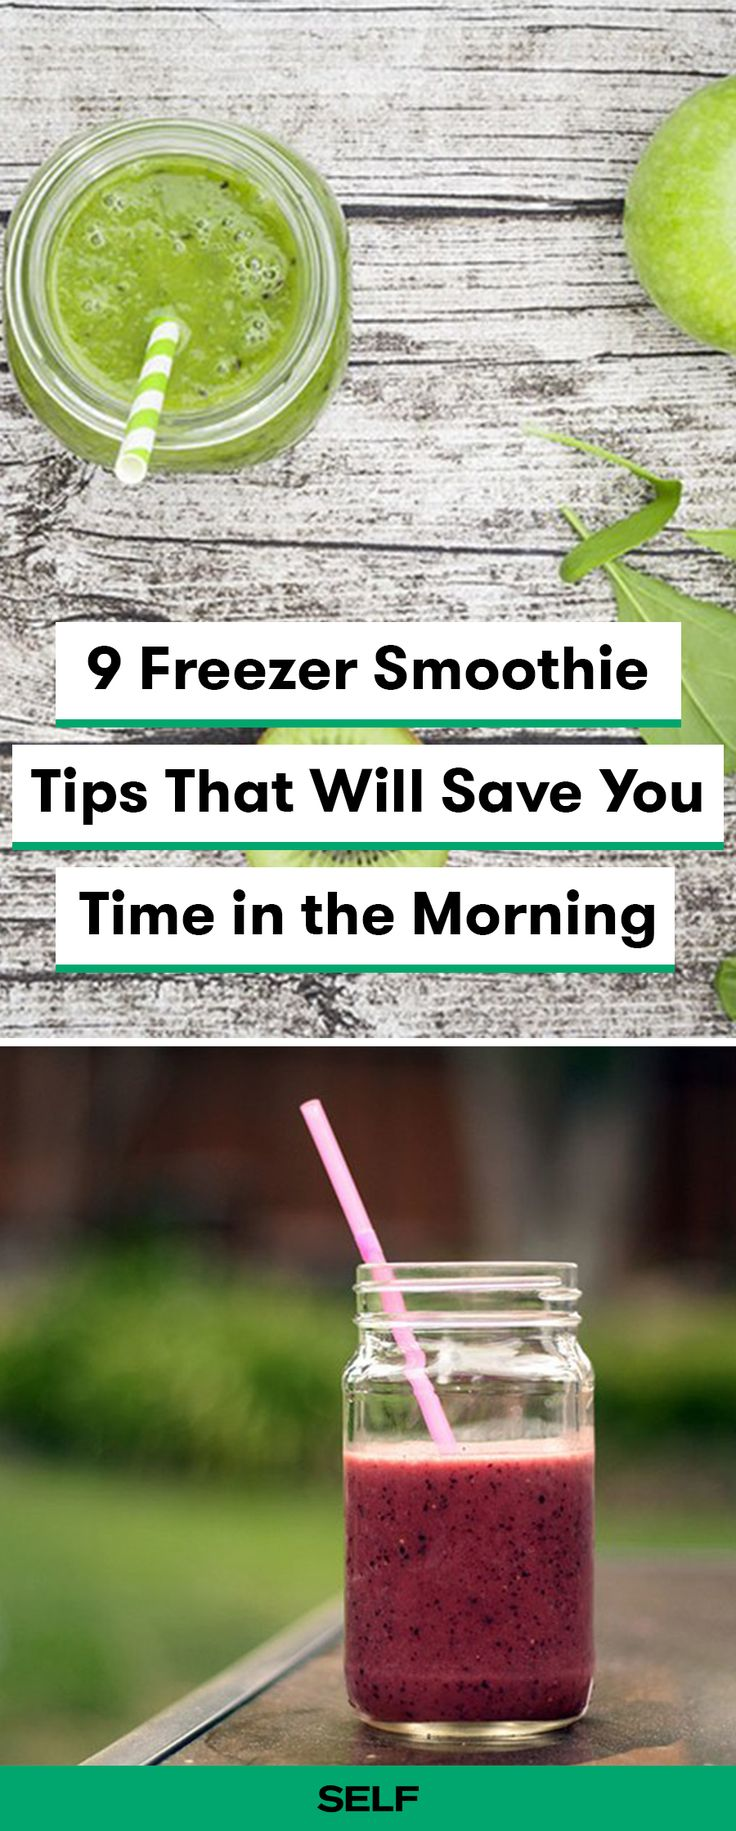 Freezer smoothie packs can do wonders for your mornings. Follow these smoothie hacks for quick and easy smoothie prep in the mornings to help with portion control and clean eating.